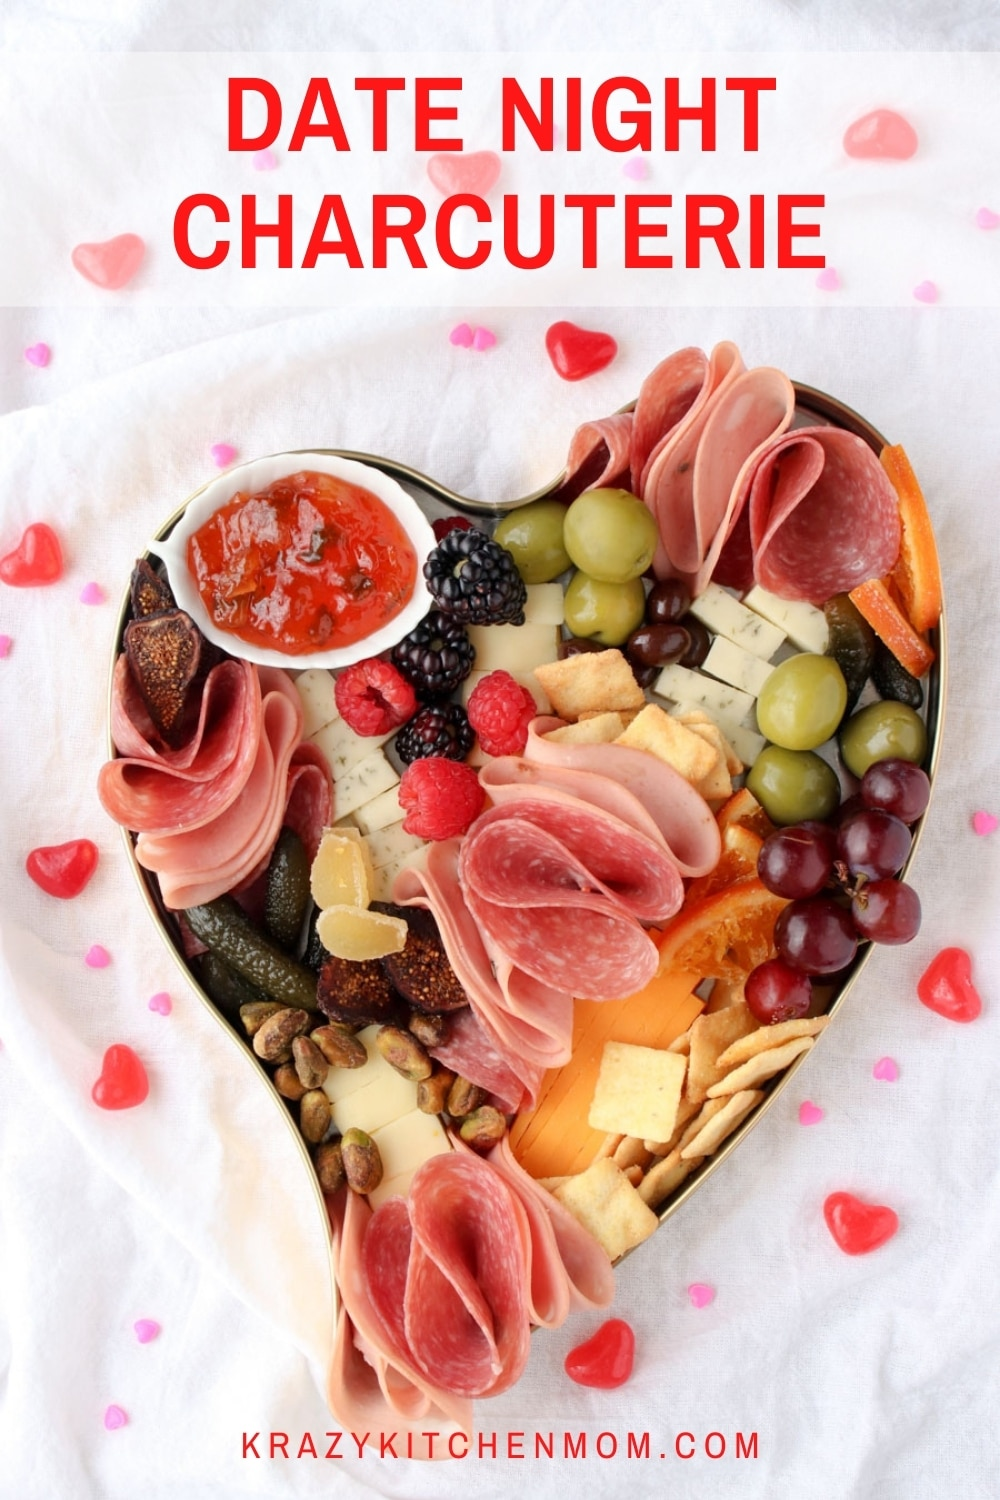 This tasty charcuterie is the perfect snack for two. Whether you are making it an official date night or settling in to watch Netflix, there's something delicious for both of you. via @krazykitchenmom